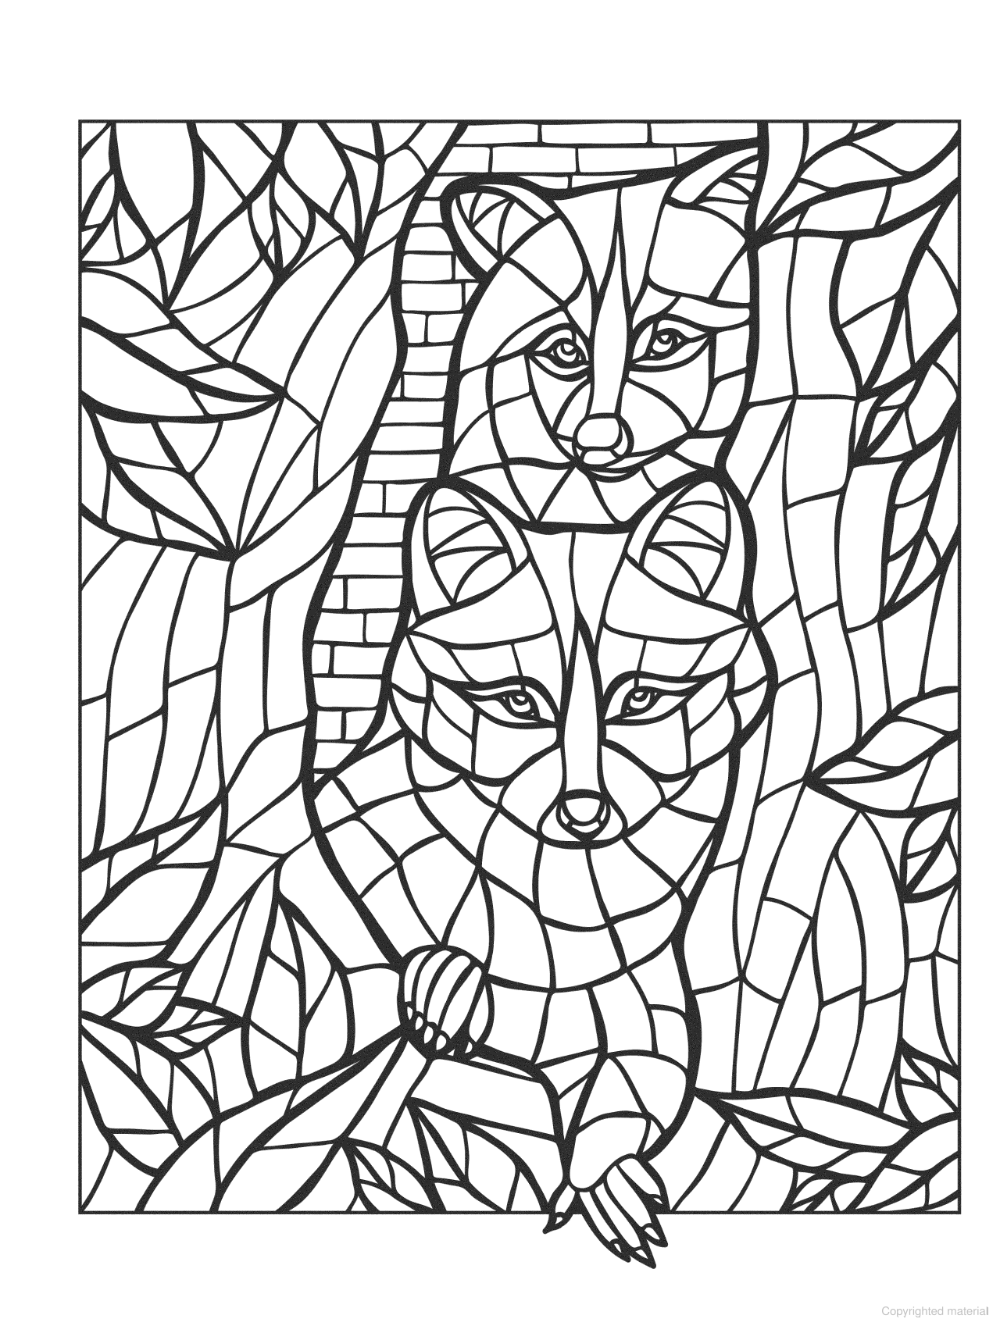 Creative Haven Animal Mosaics Coloring Book Animal Coloring Pages Coloring Books Pattern Coloring Pages